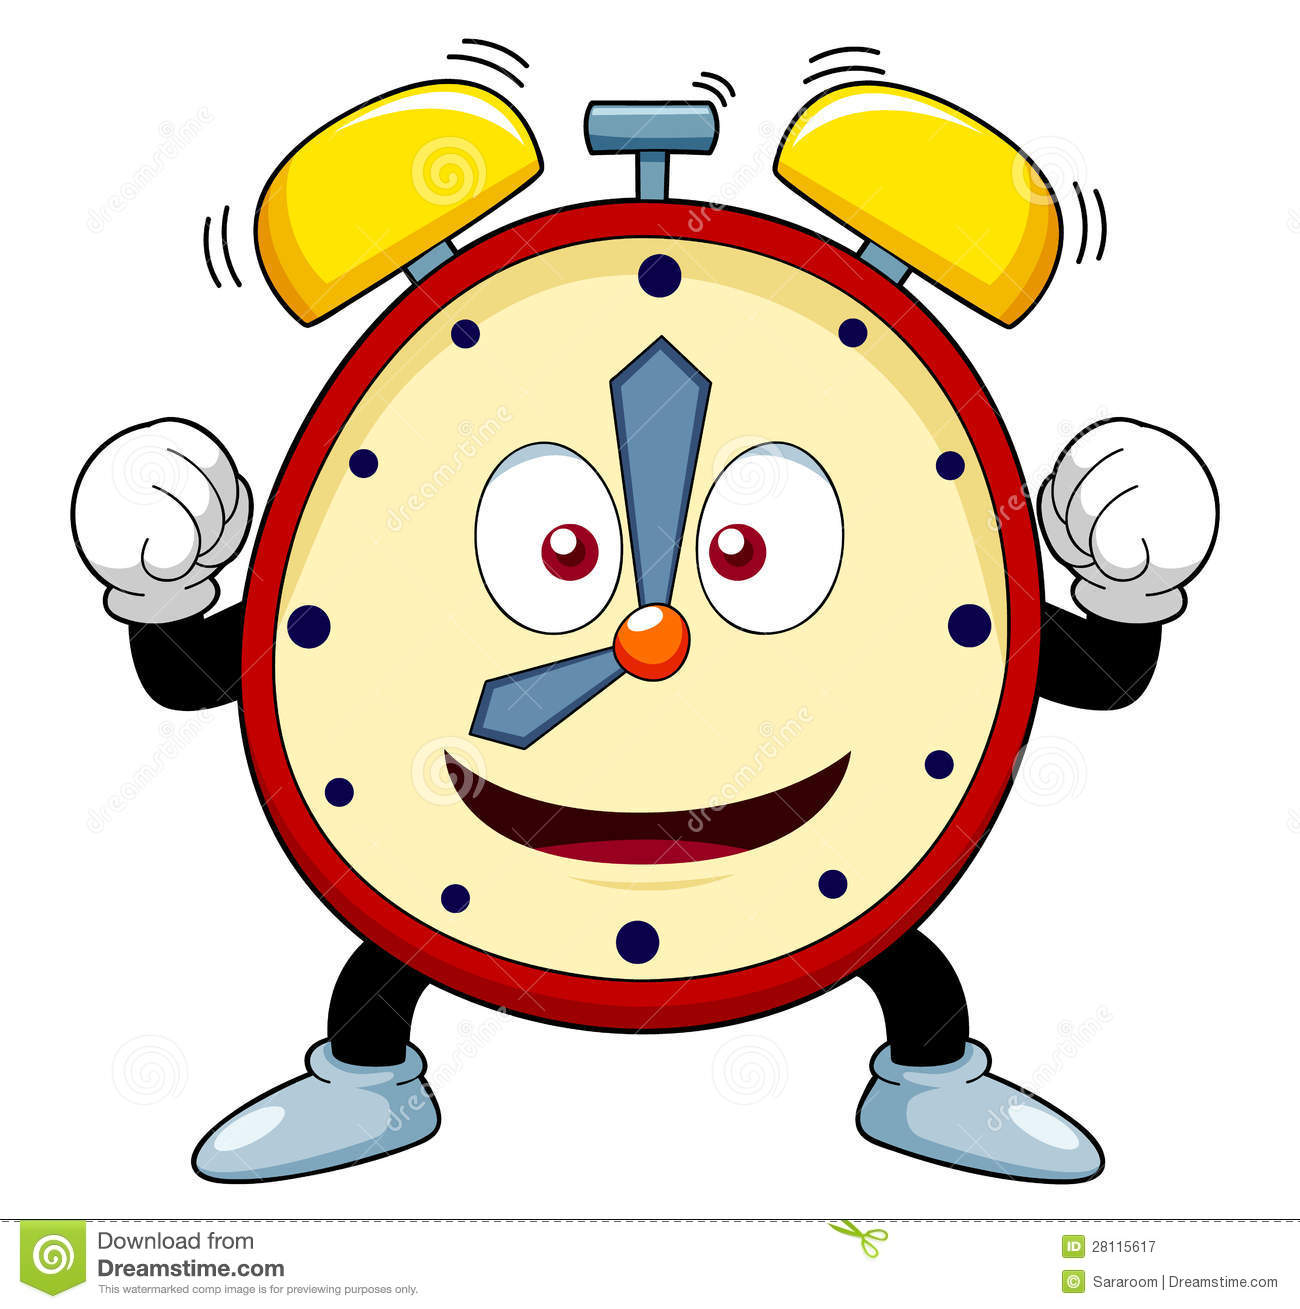 Image result for cartoon alarm clock